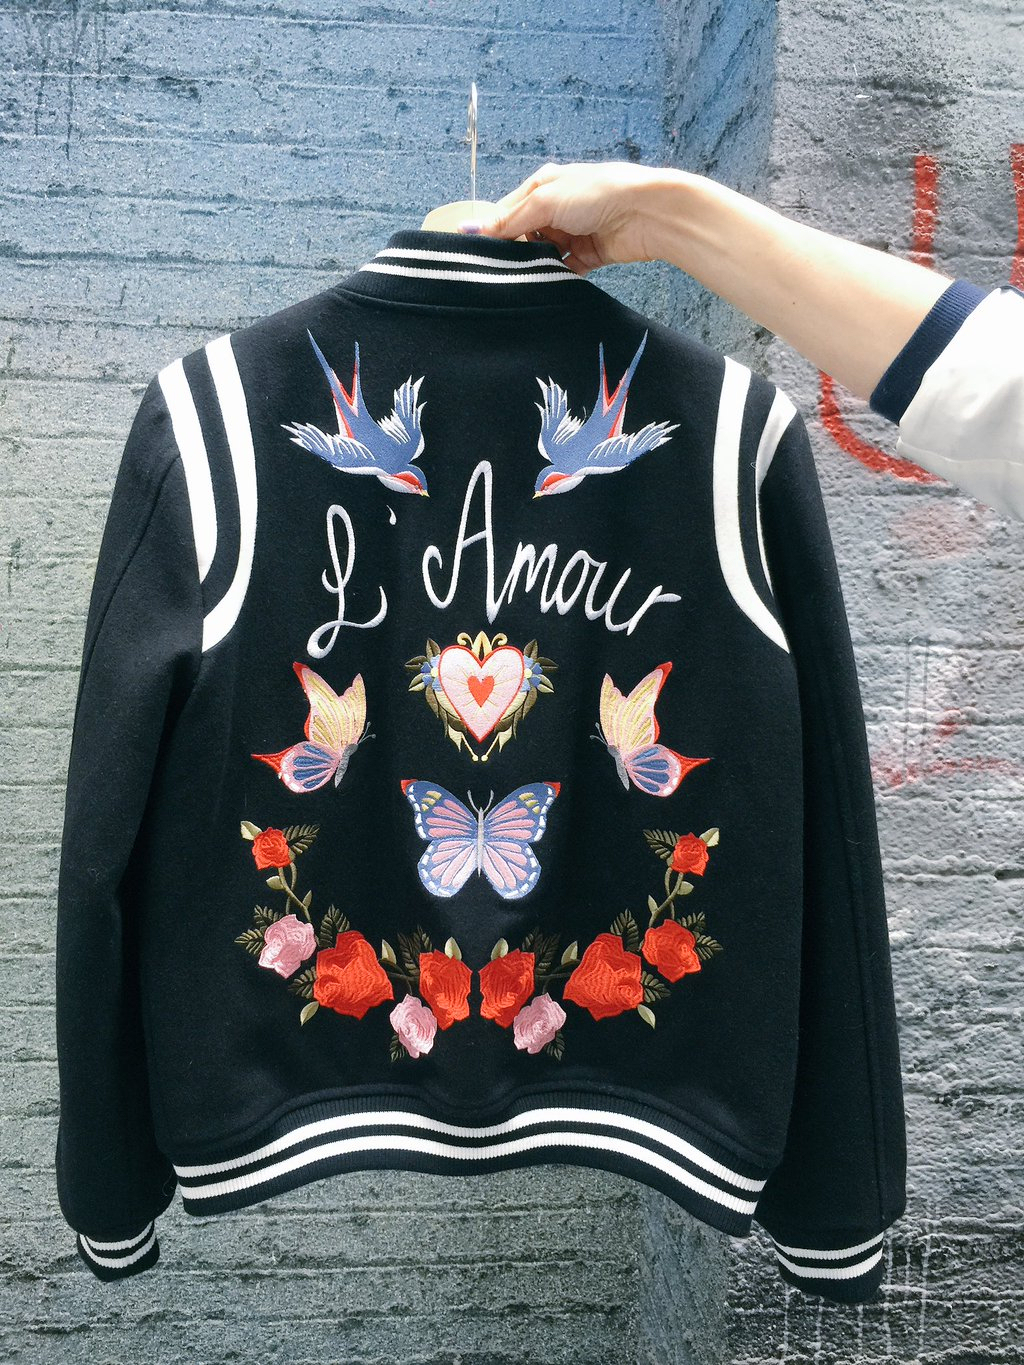 New look automne hiver 2016 2017 taaora blog mode - La redoute automne hiver 2017 ...